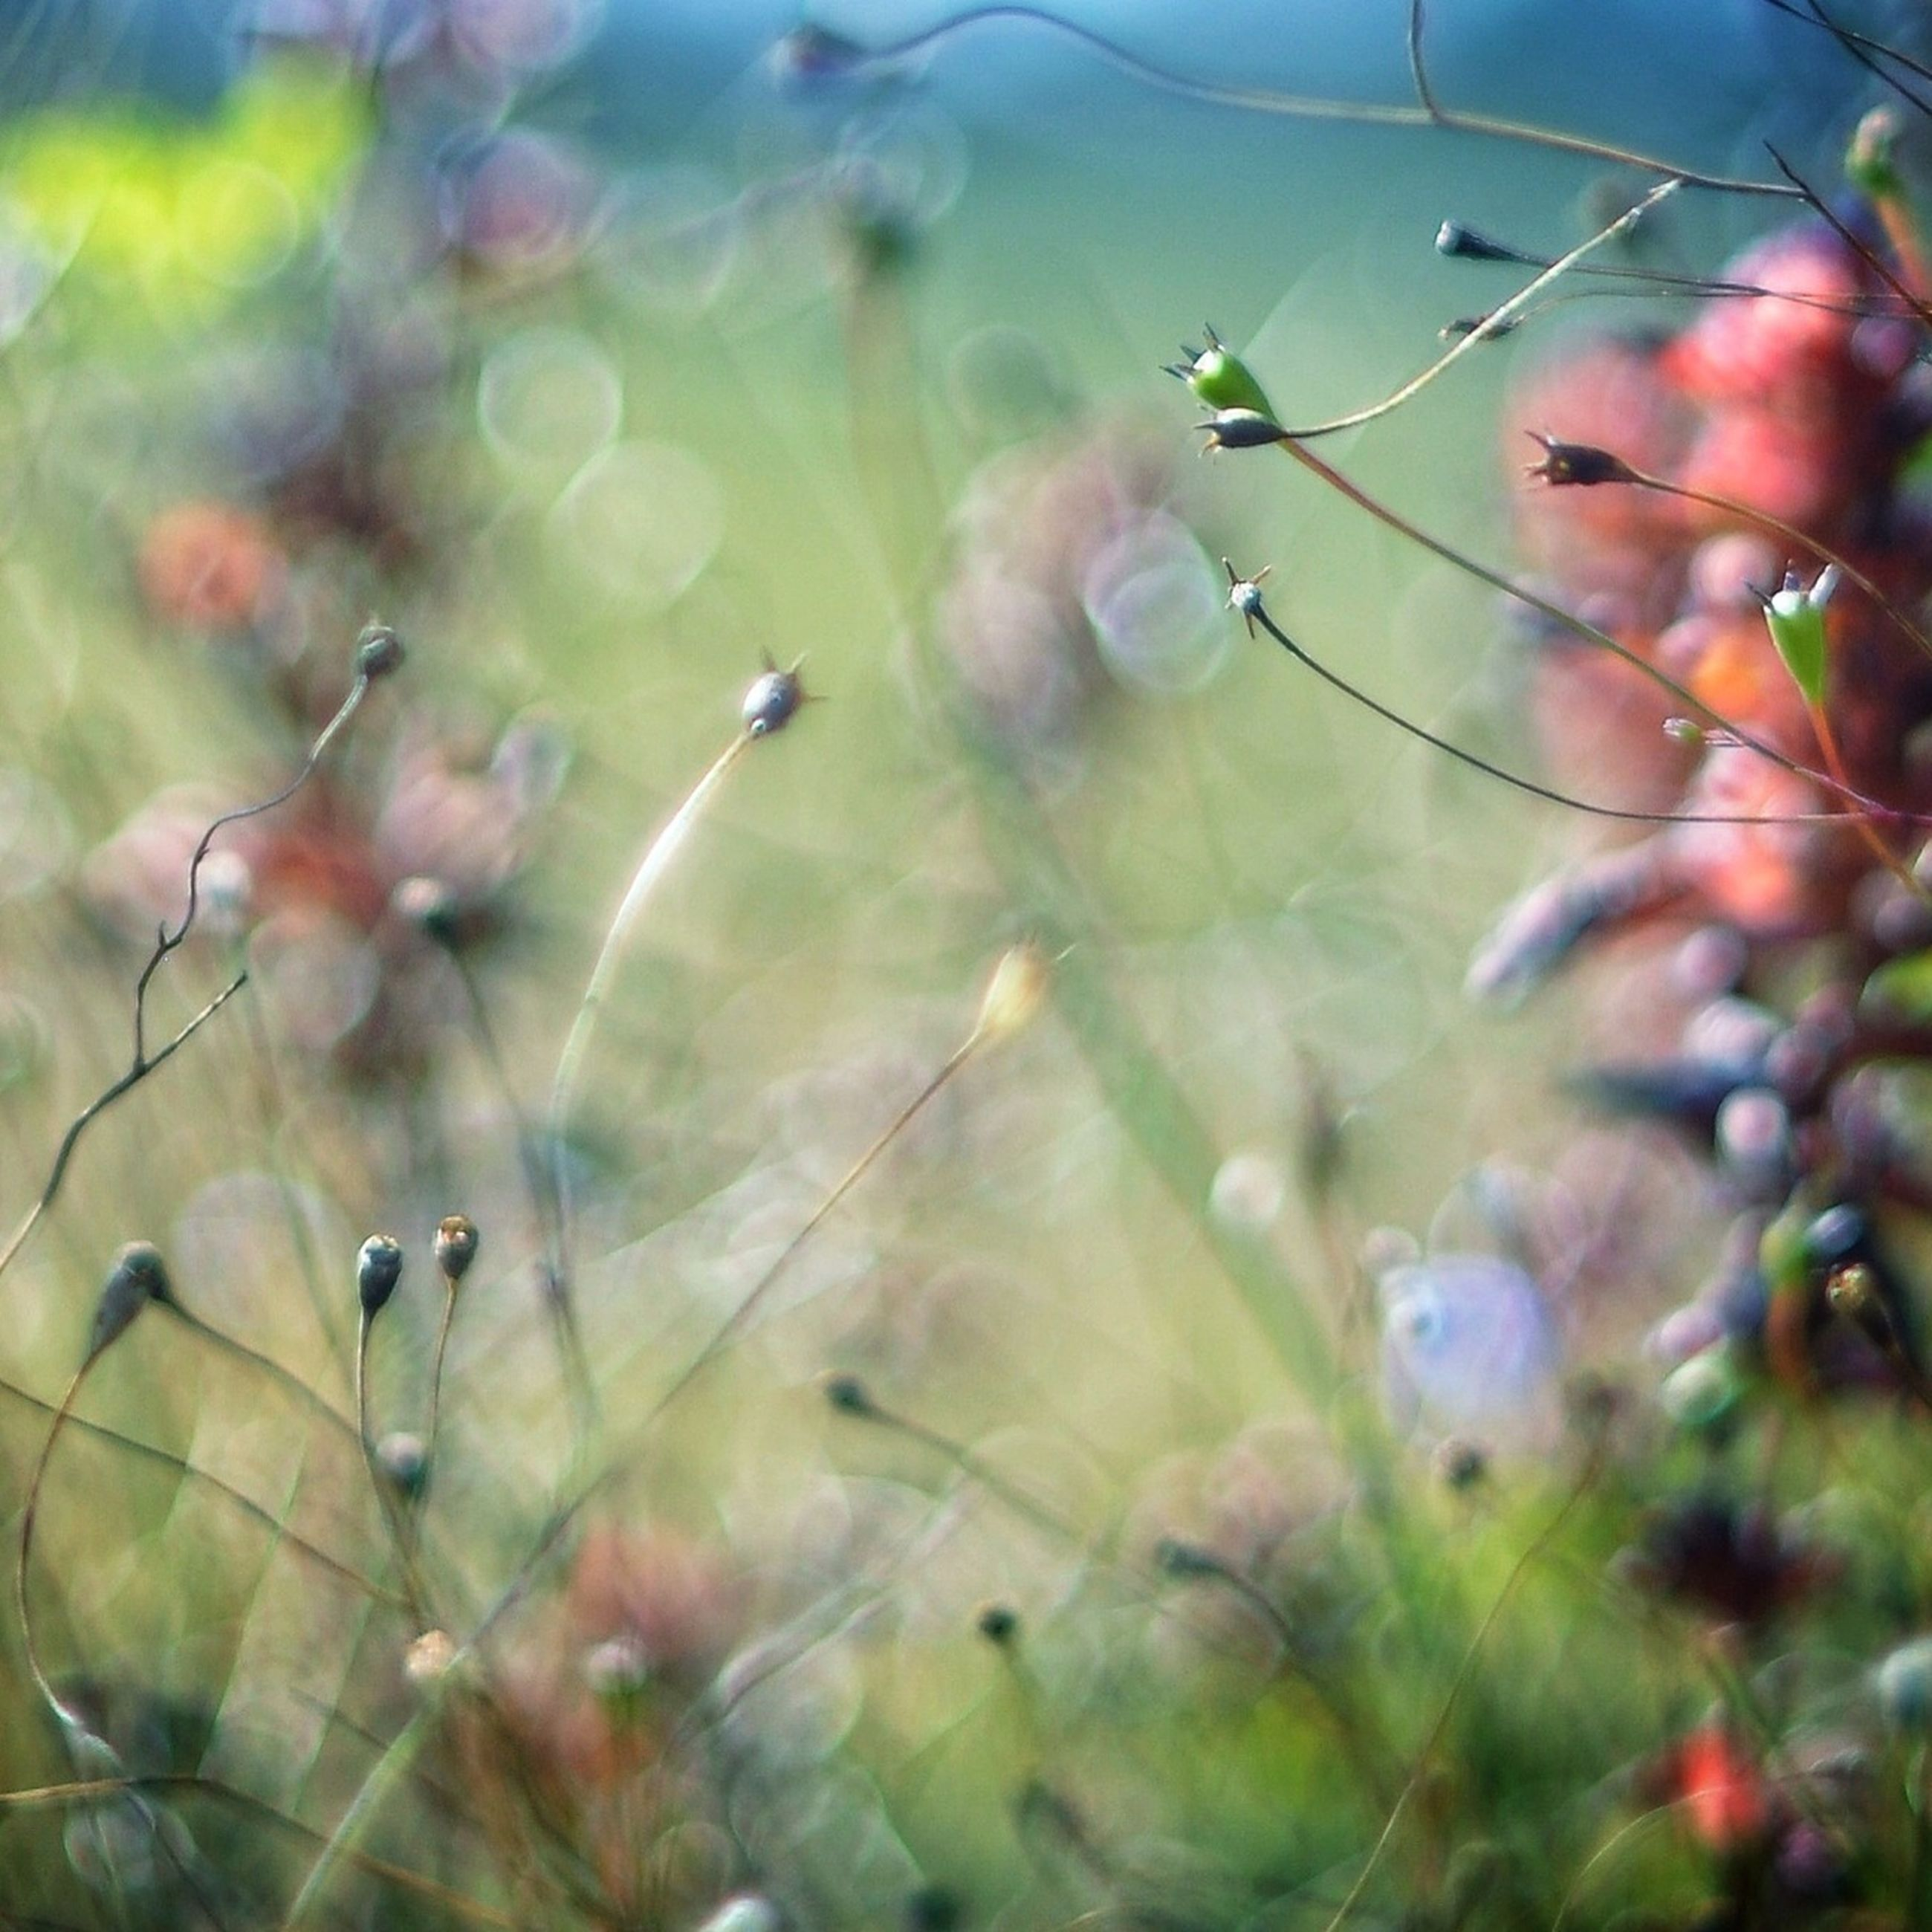 growth, focus on foreground, close-up, plant, nature, selective focus, fragility, beauty in nature, freshness, leaf, stem, green color, day, bud, twig, outdoors, no people, spider web, branch, flower